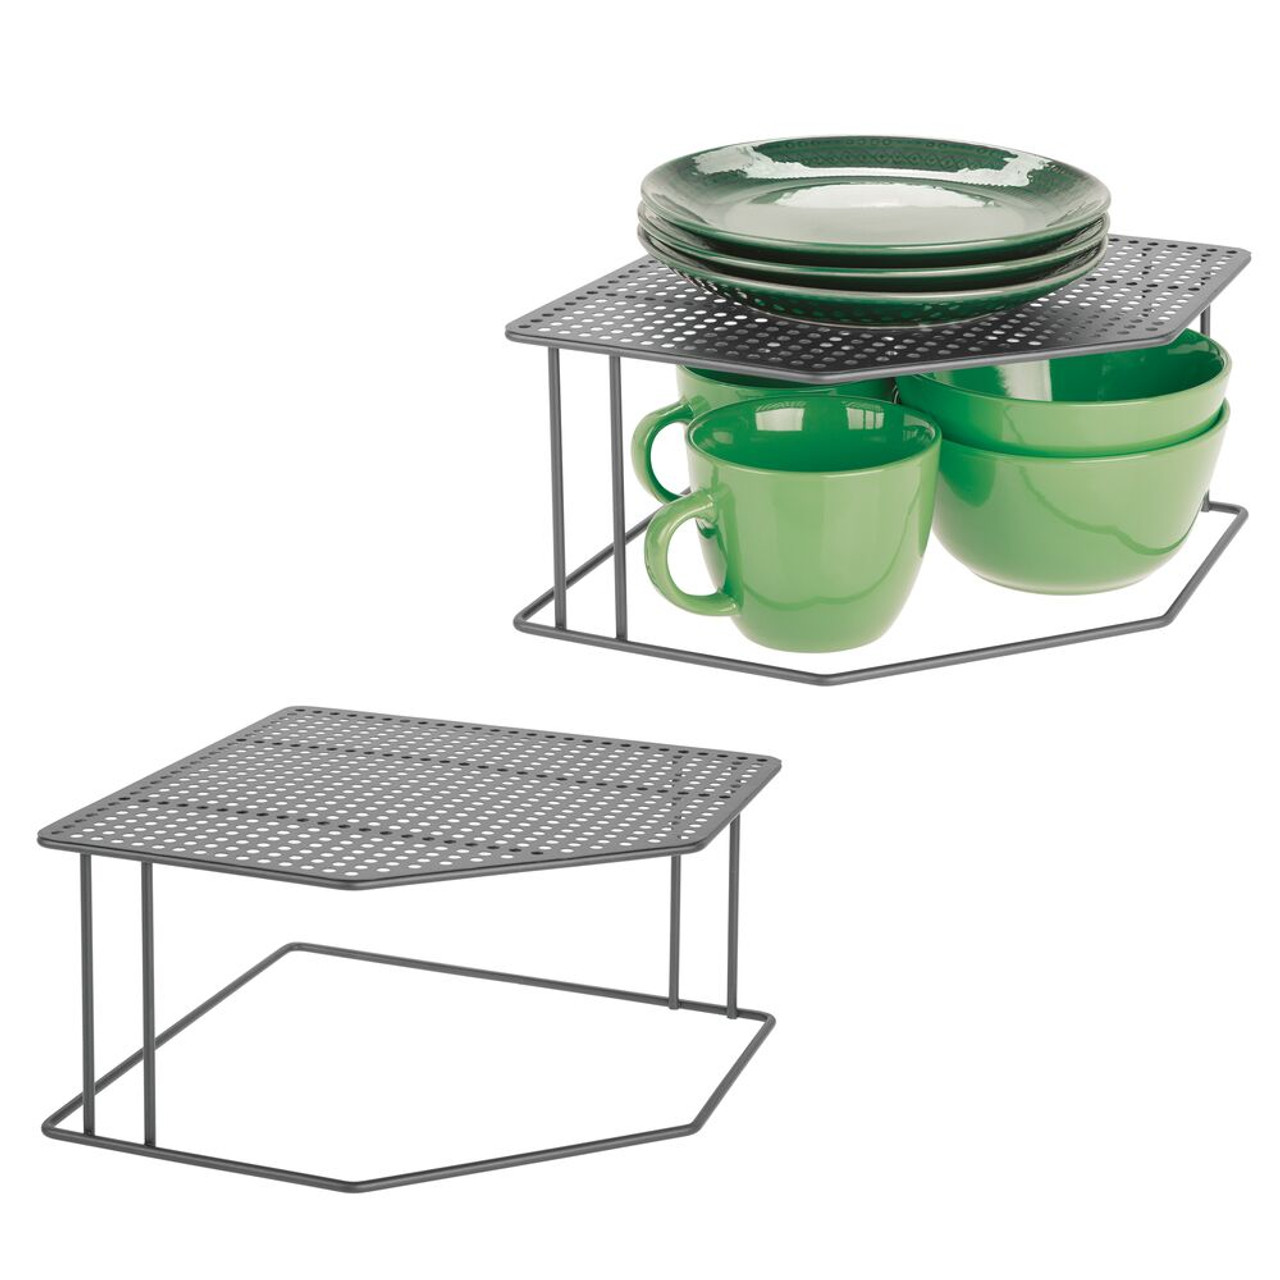 2 Tier Free Standing Kitchen Storage Shelf For Counter Tops And Cupboards Bronze Mdesign Corner Shelf Kitchen Accessories And More Store Crockery Dishes Expressipnetwork Hu